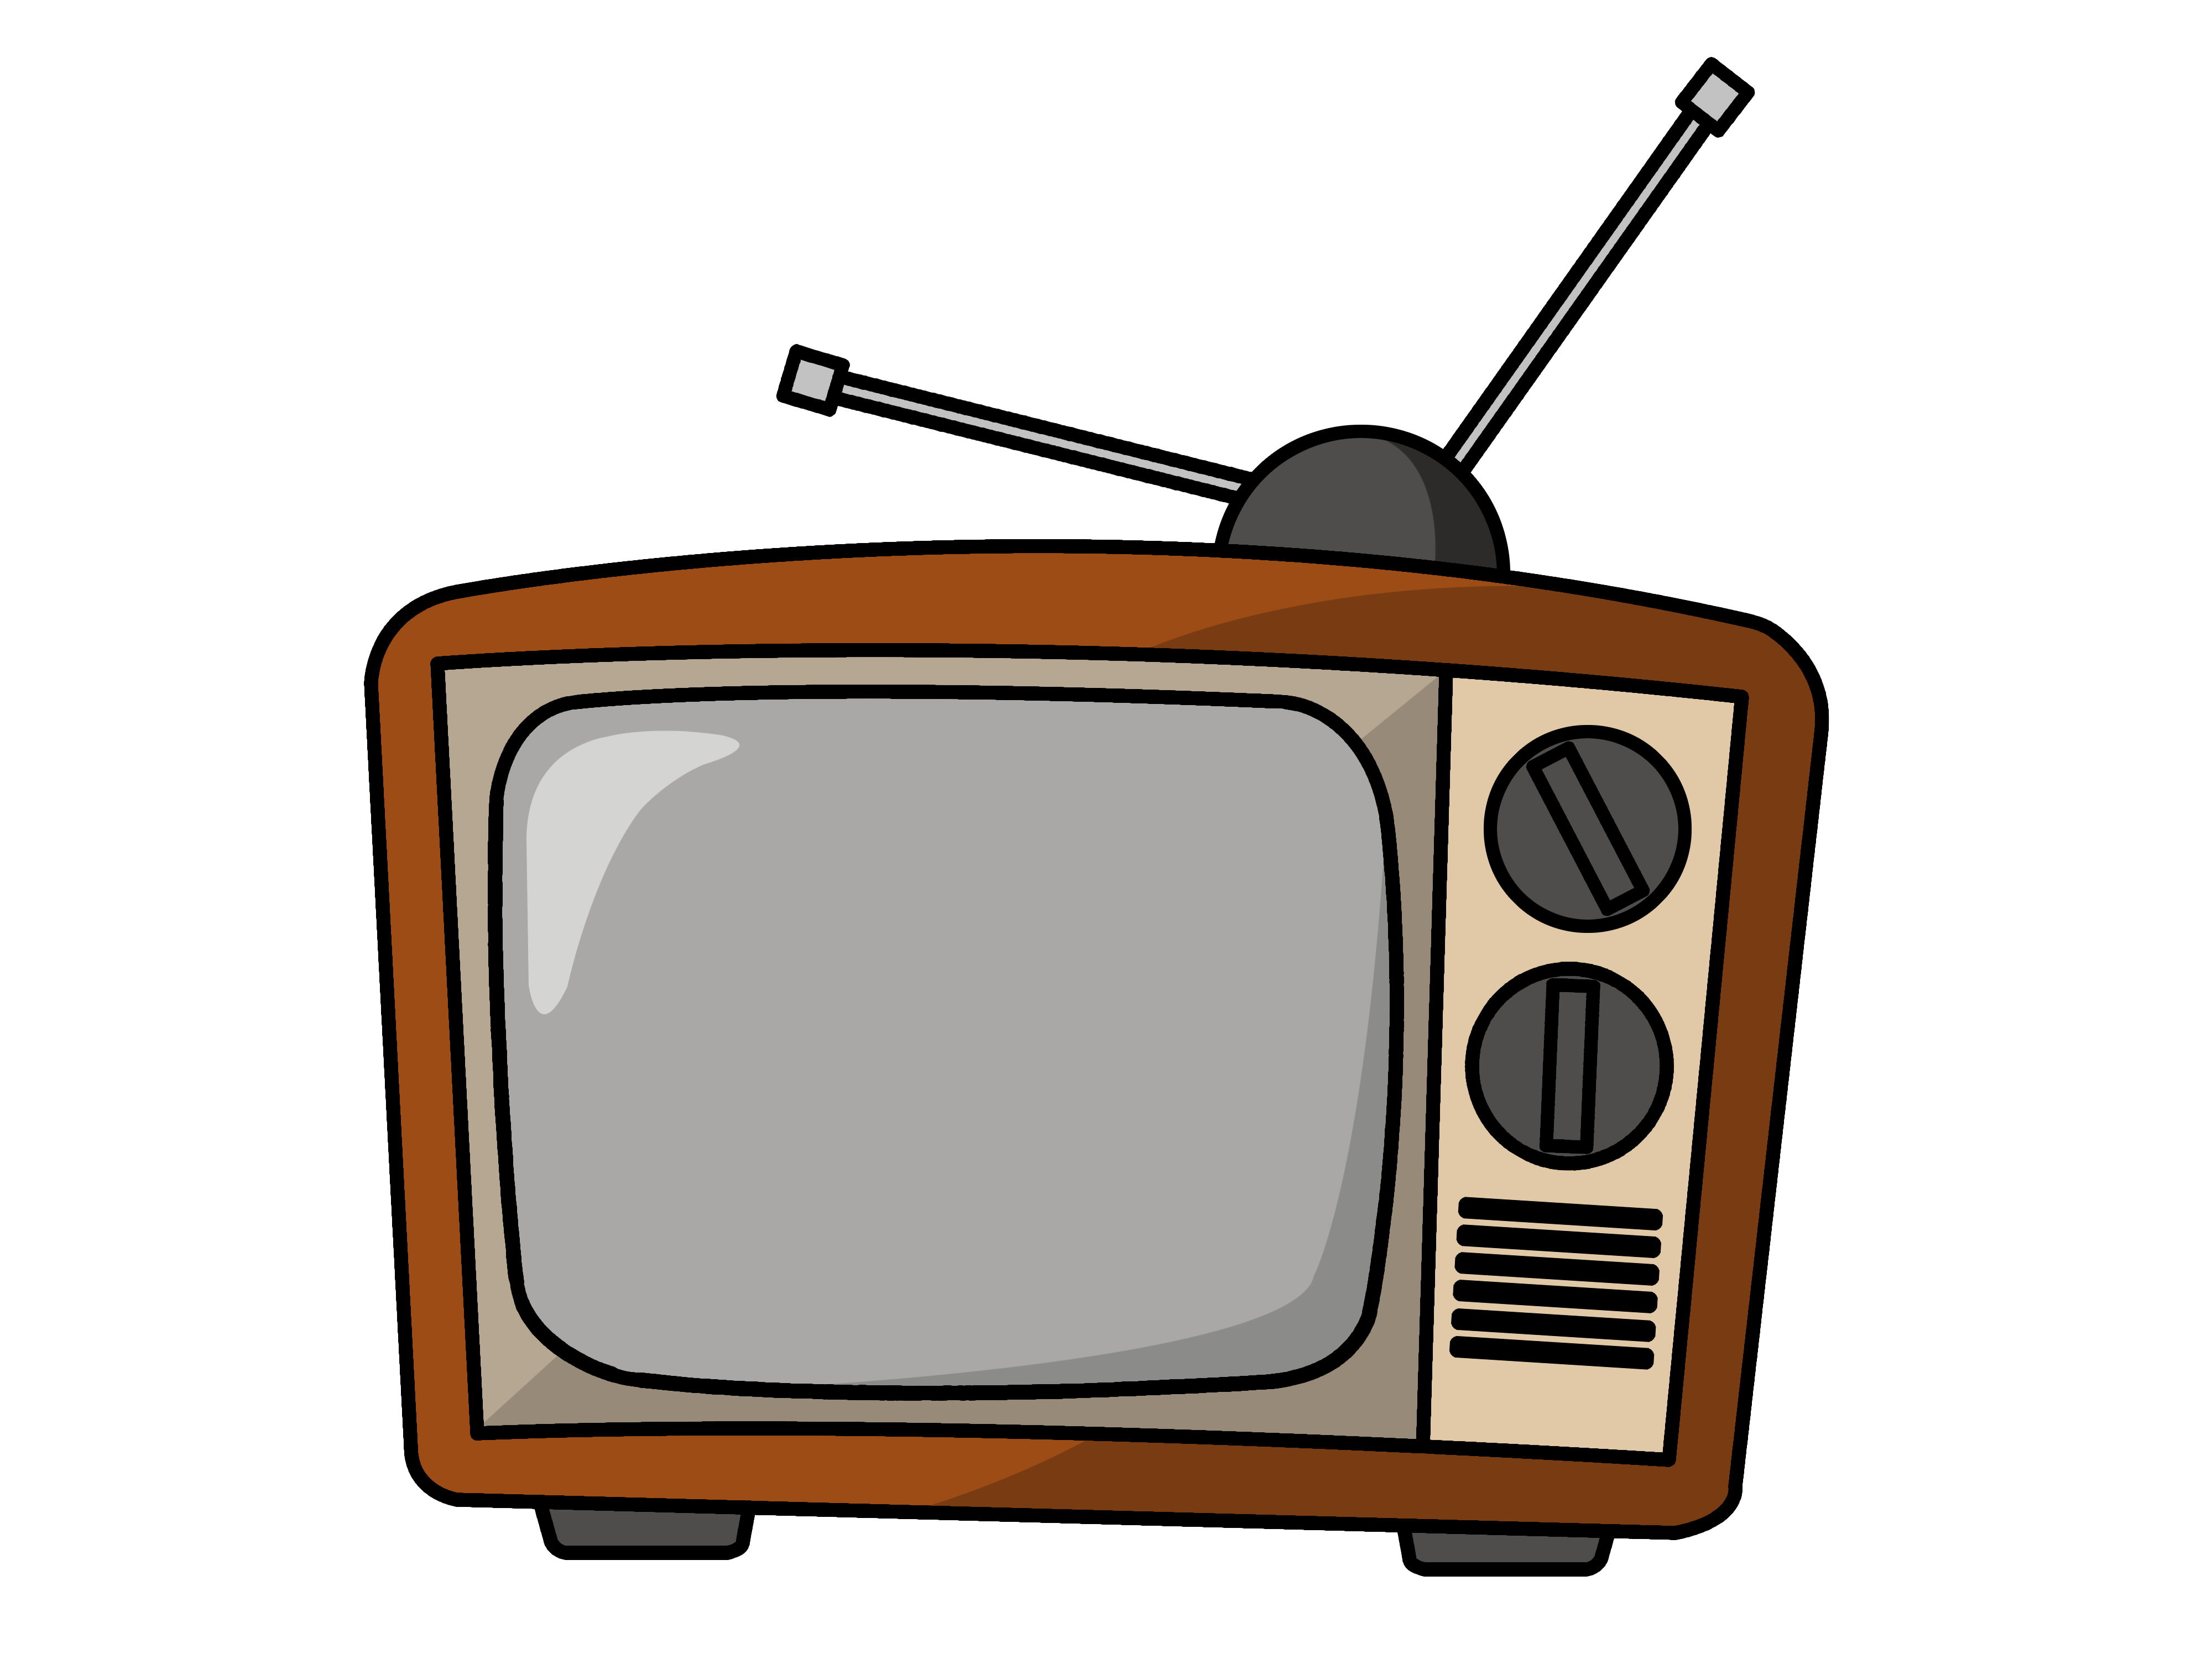 Television clipart ancient. Download tv free png